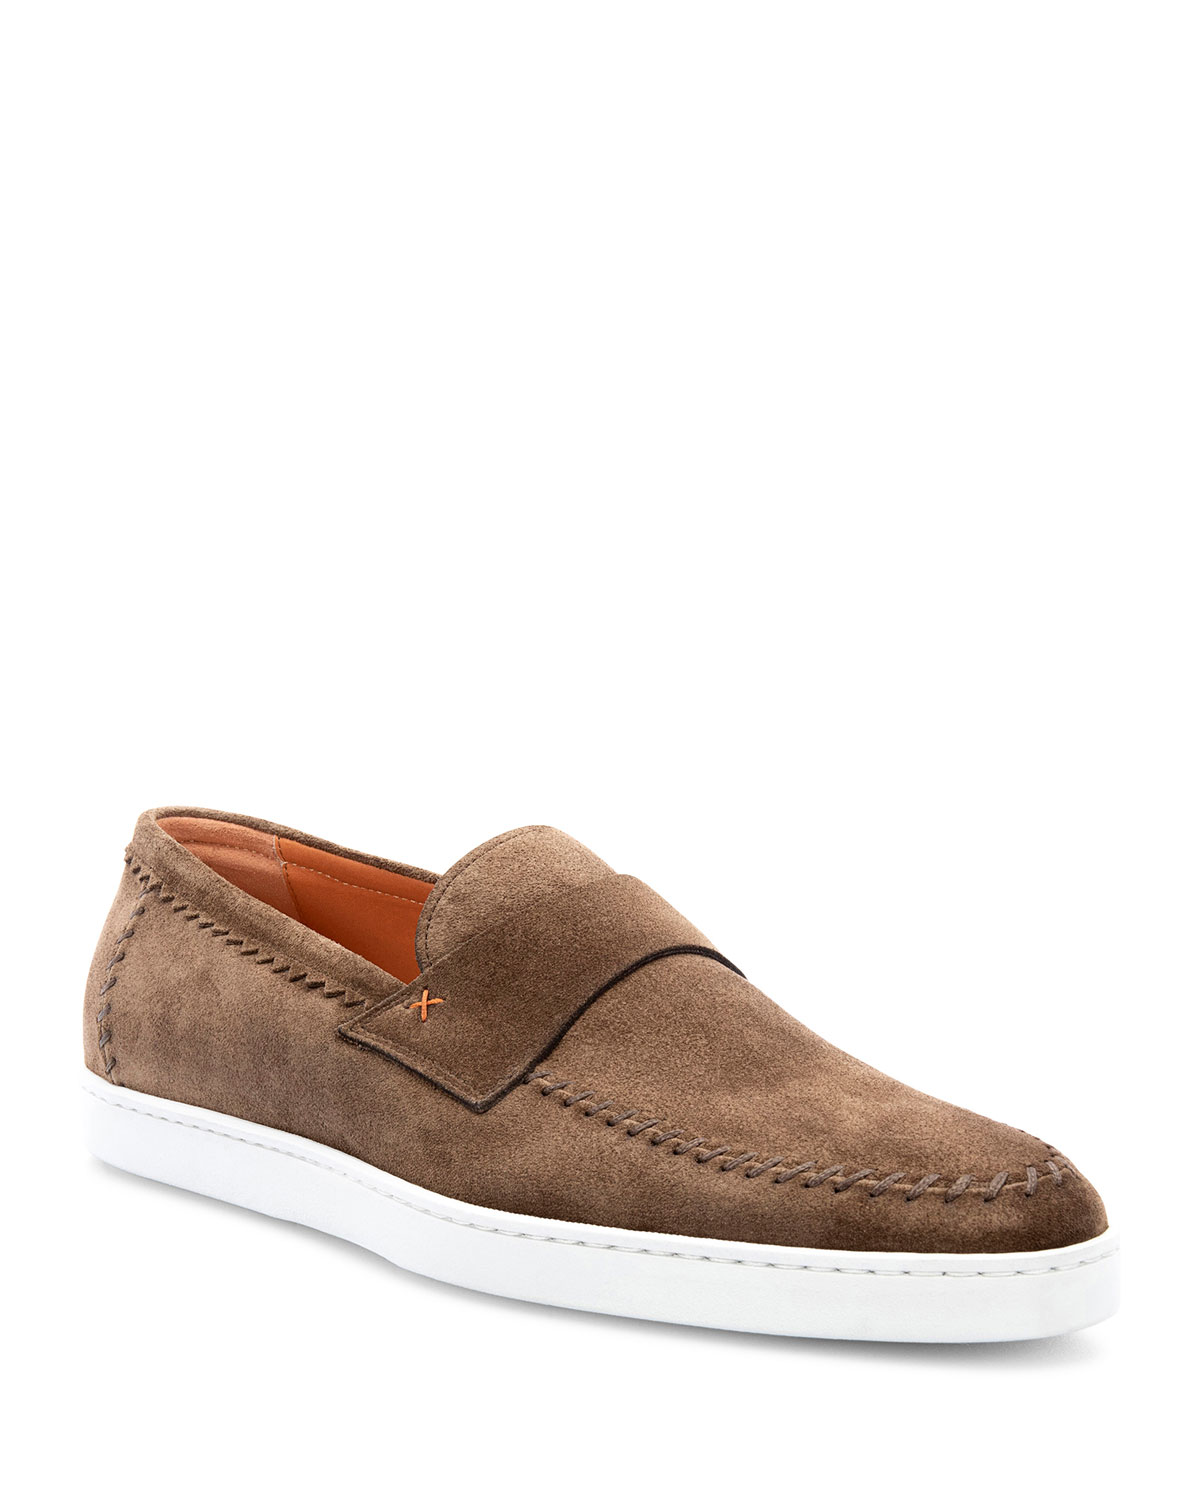 Men's Banker Stitched Suede Loafers